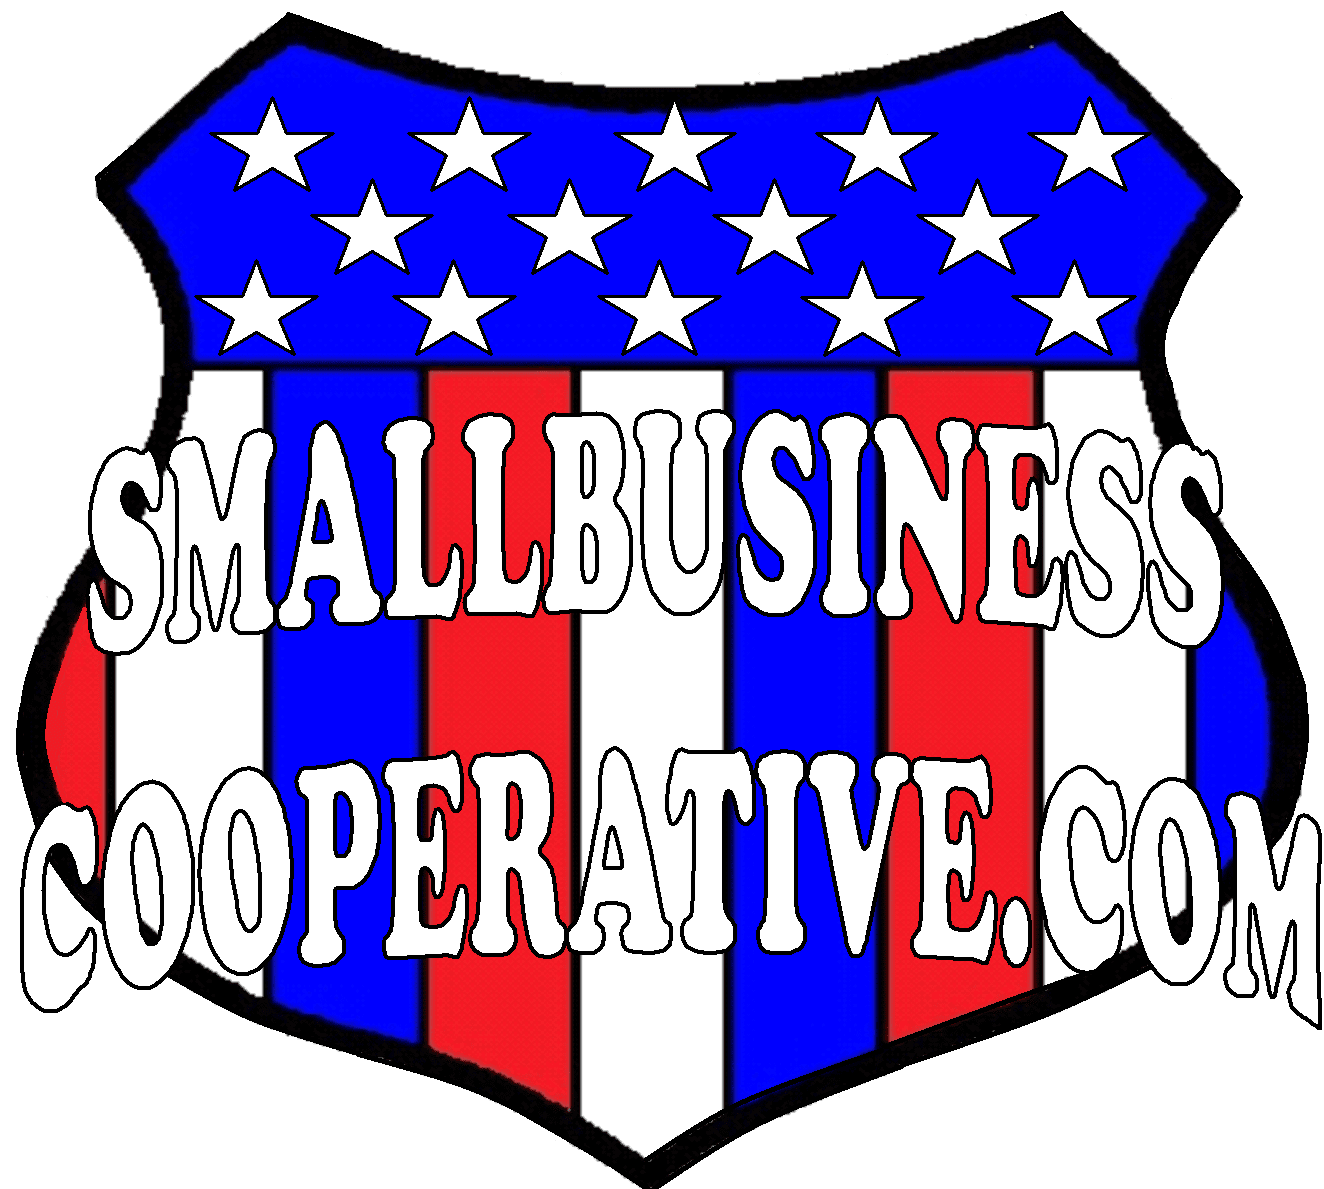 Small Business Cooperative Logo